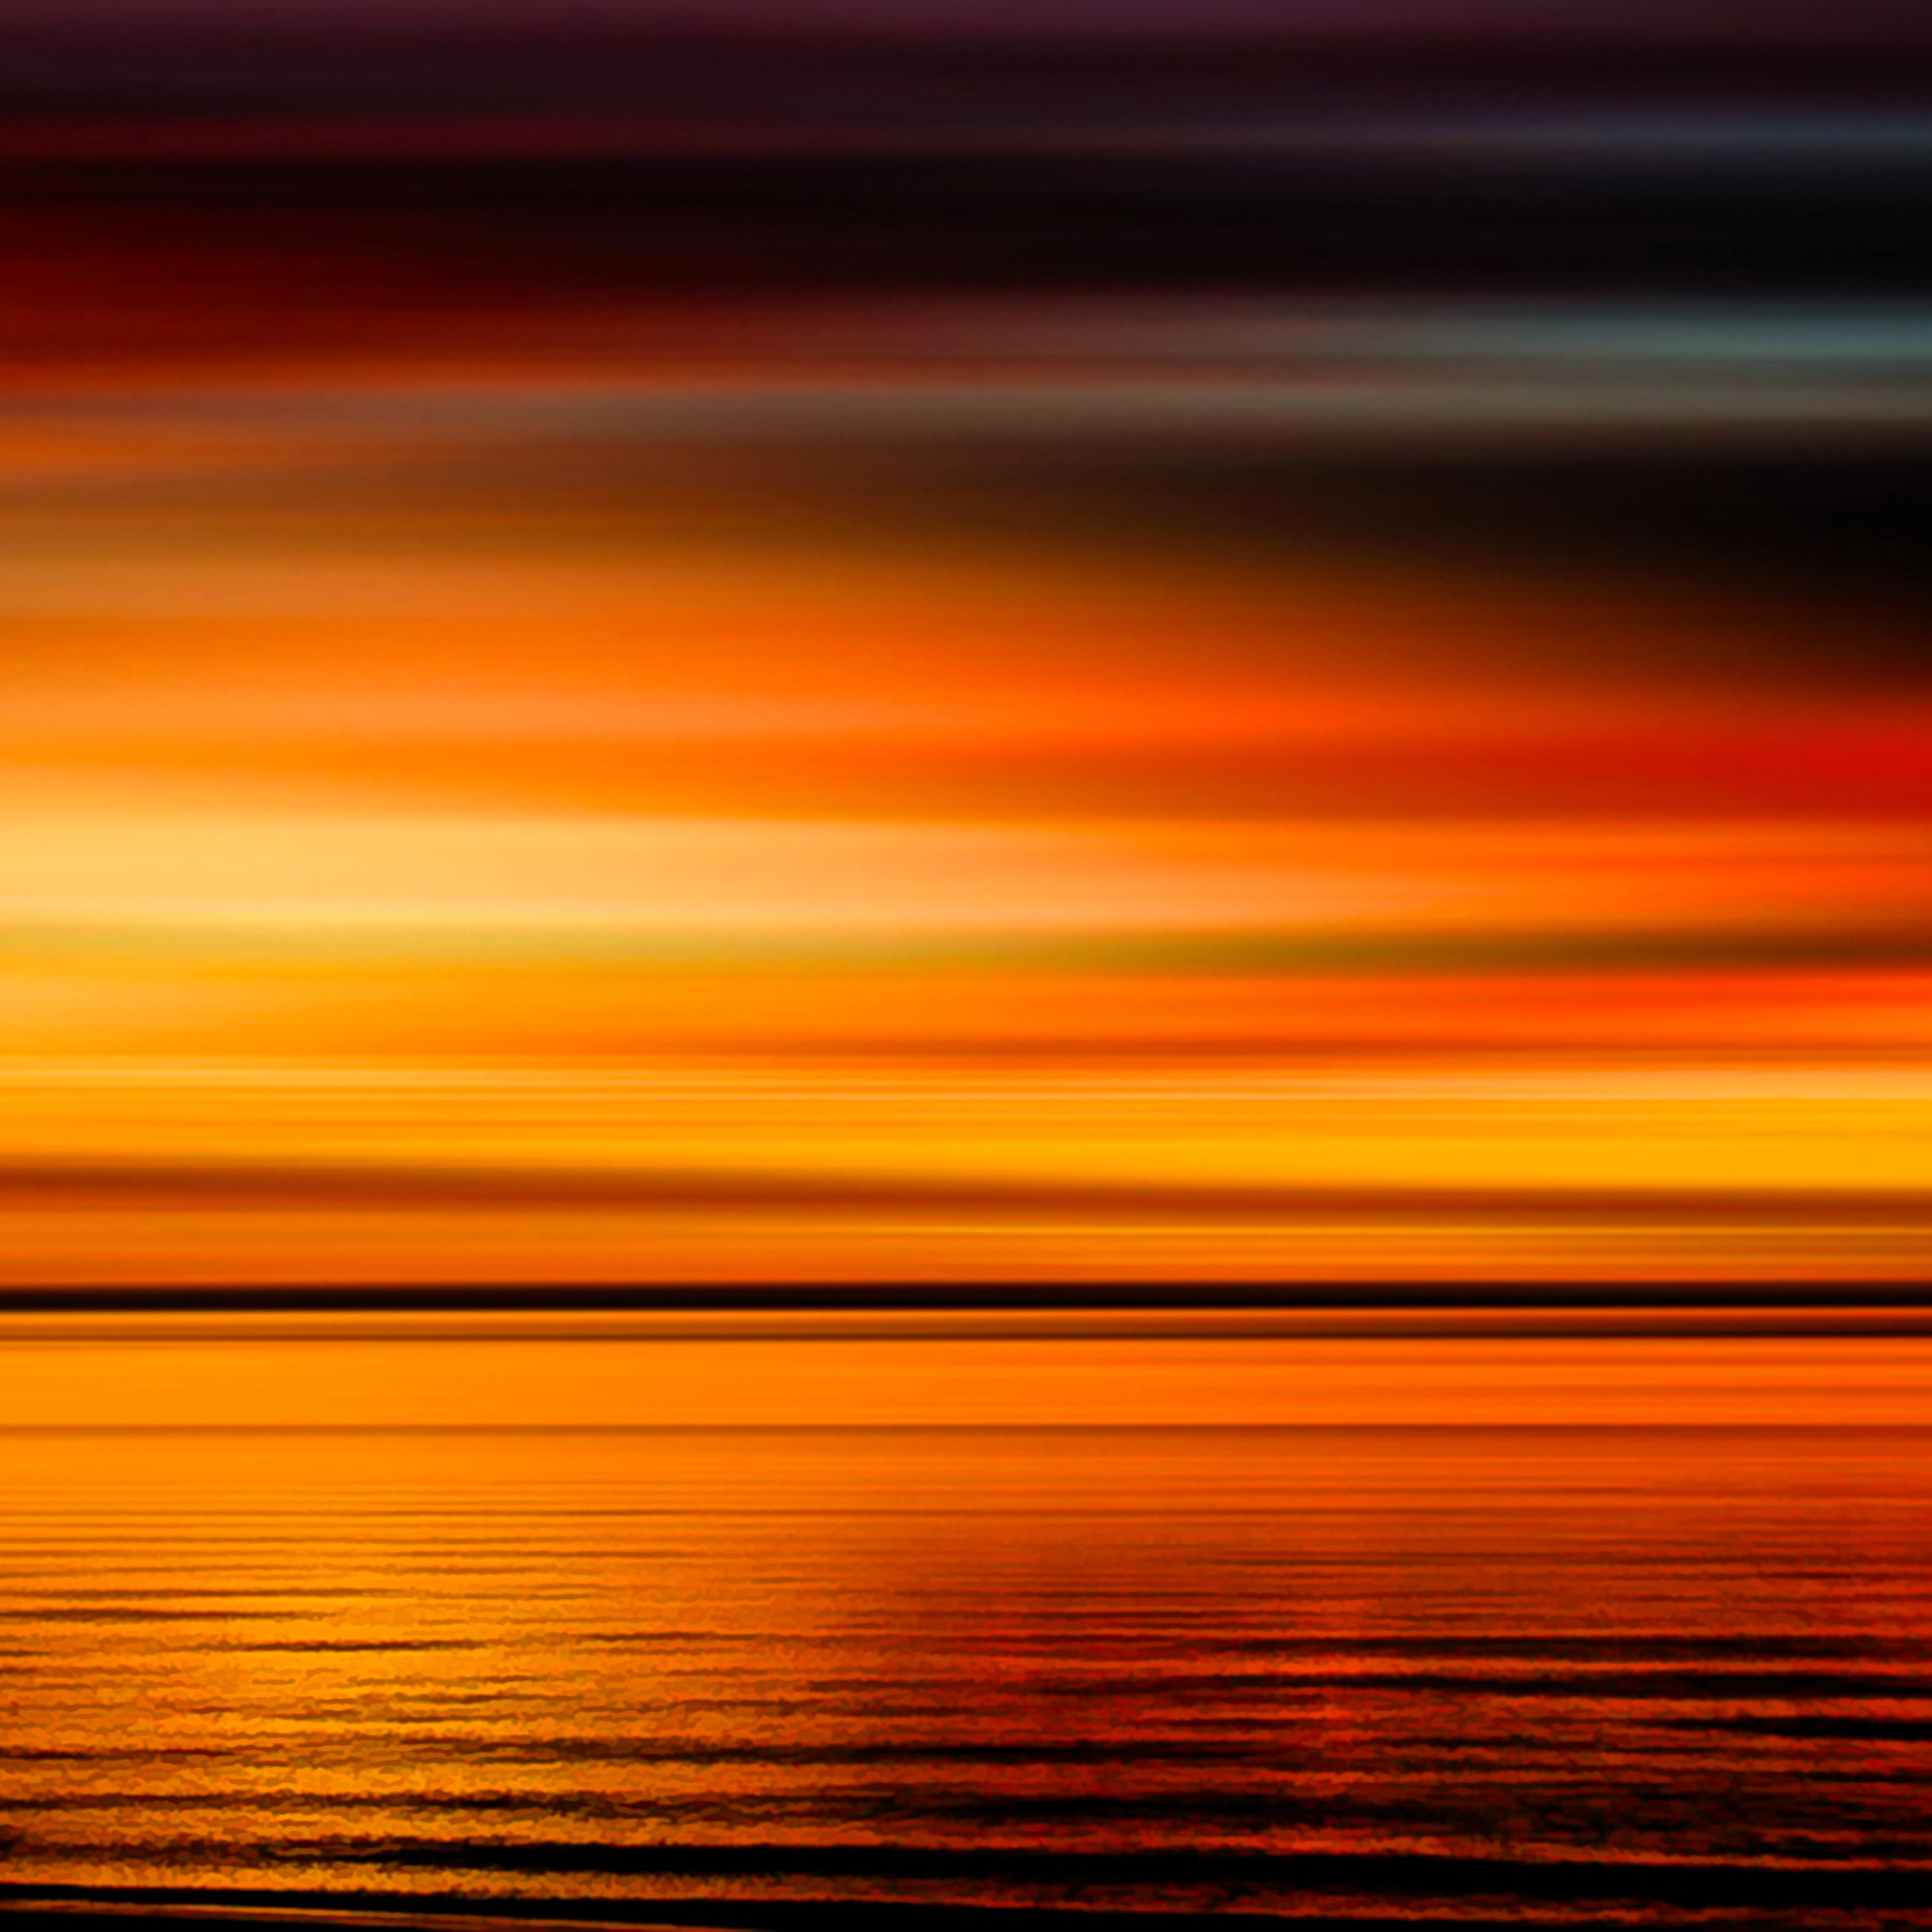 Sunset-3Wallpapers-iPad-Retina